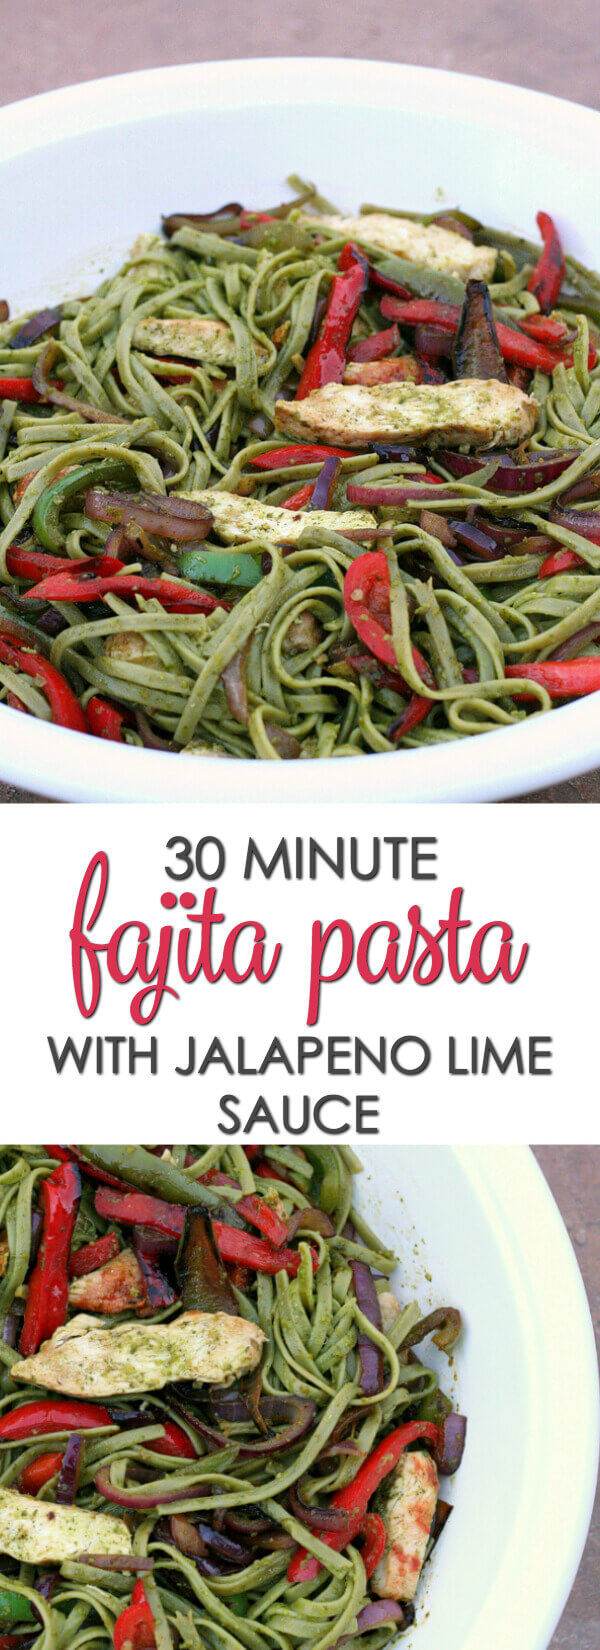 30 Minute Chicken Fajita Pasta with Jalapeno Lime Sauce - this quick and easy recipe is packed with flavor and only takes 30 minutes